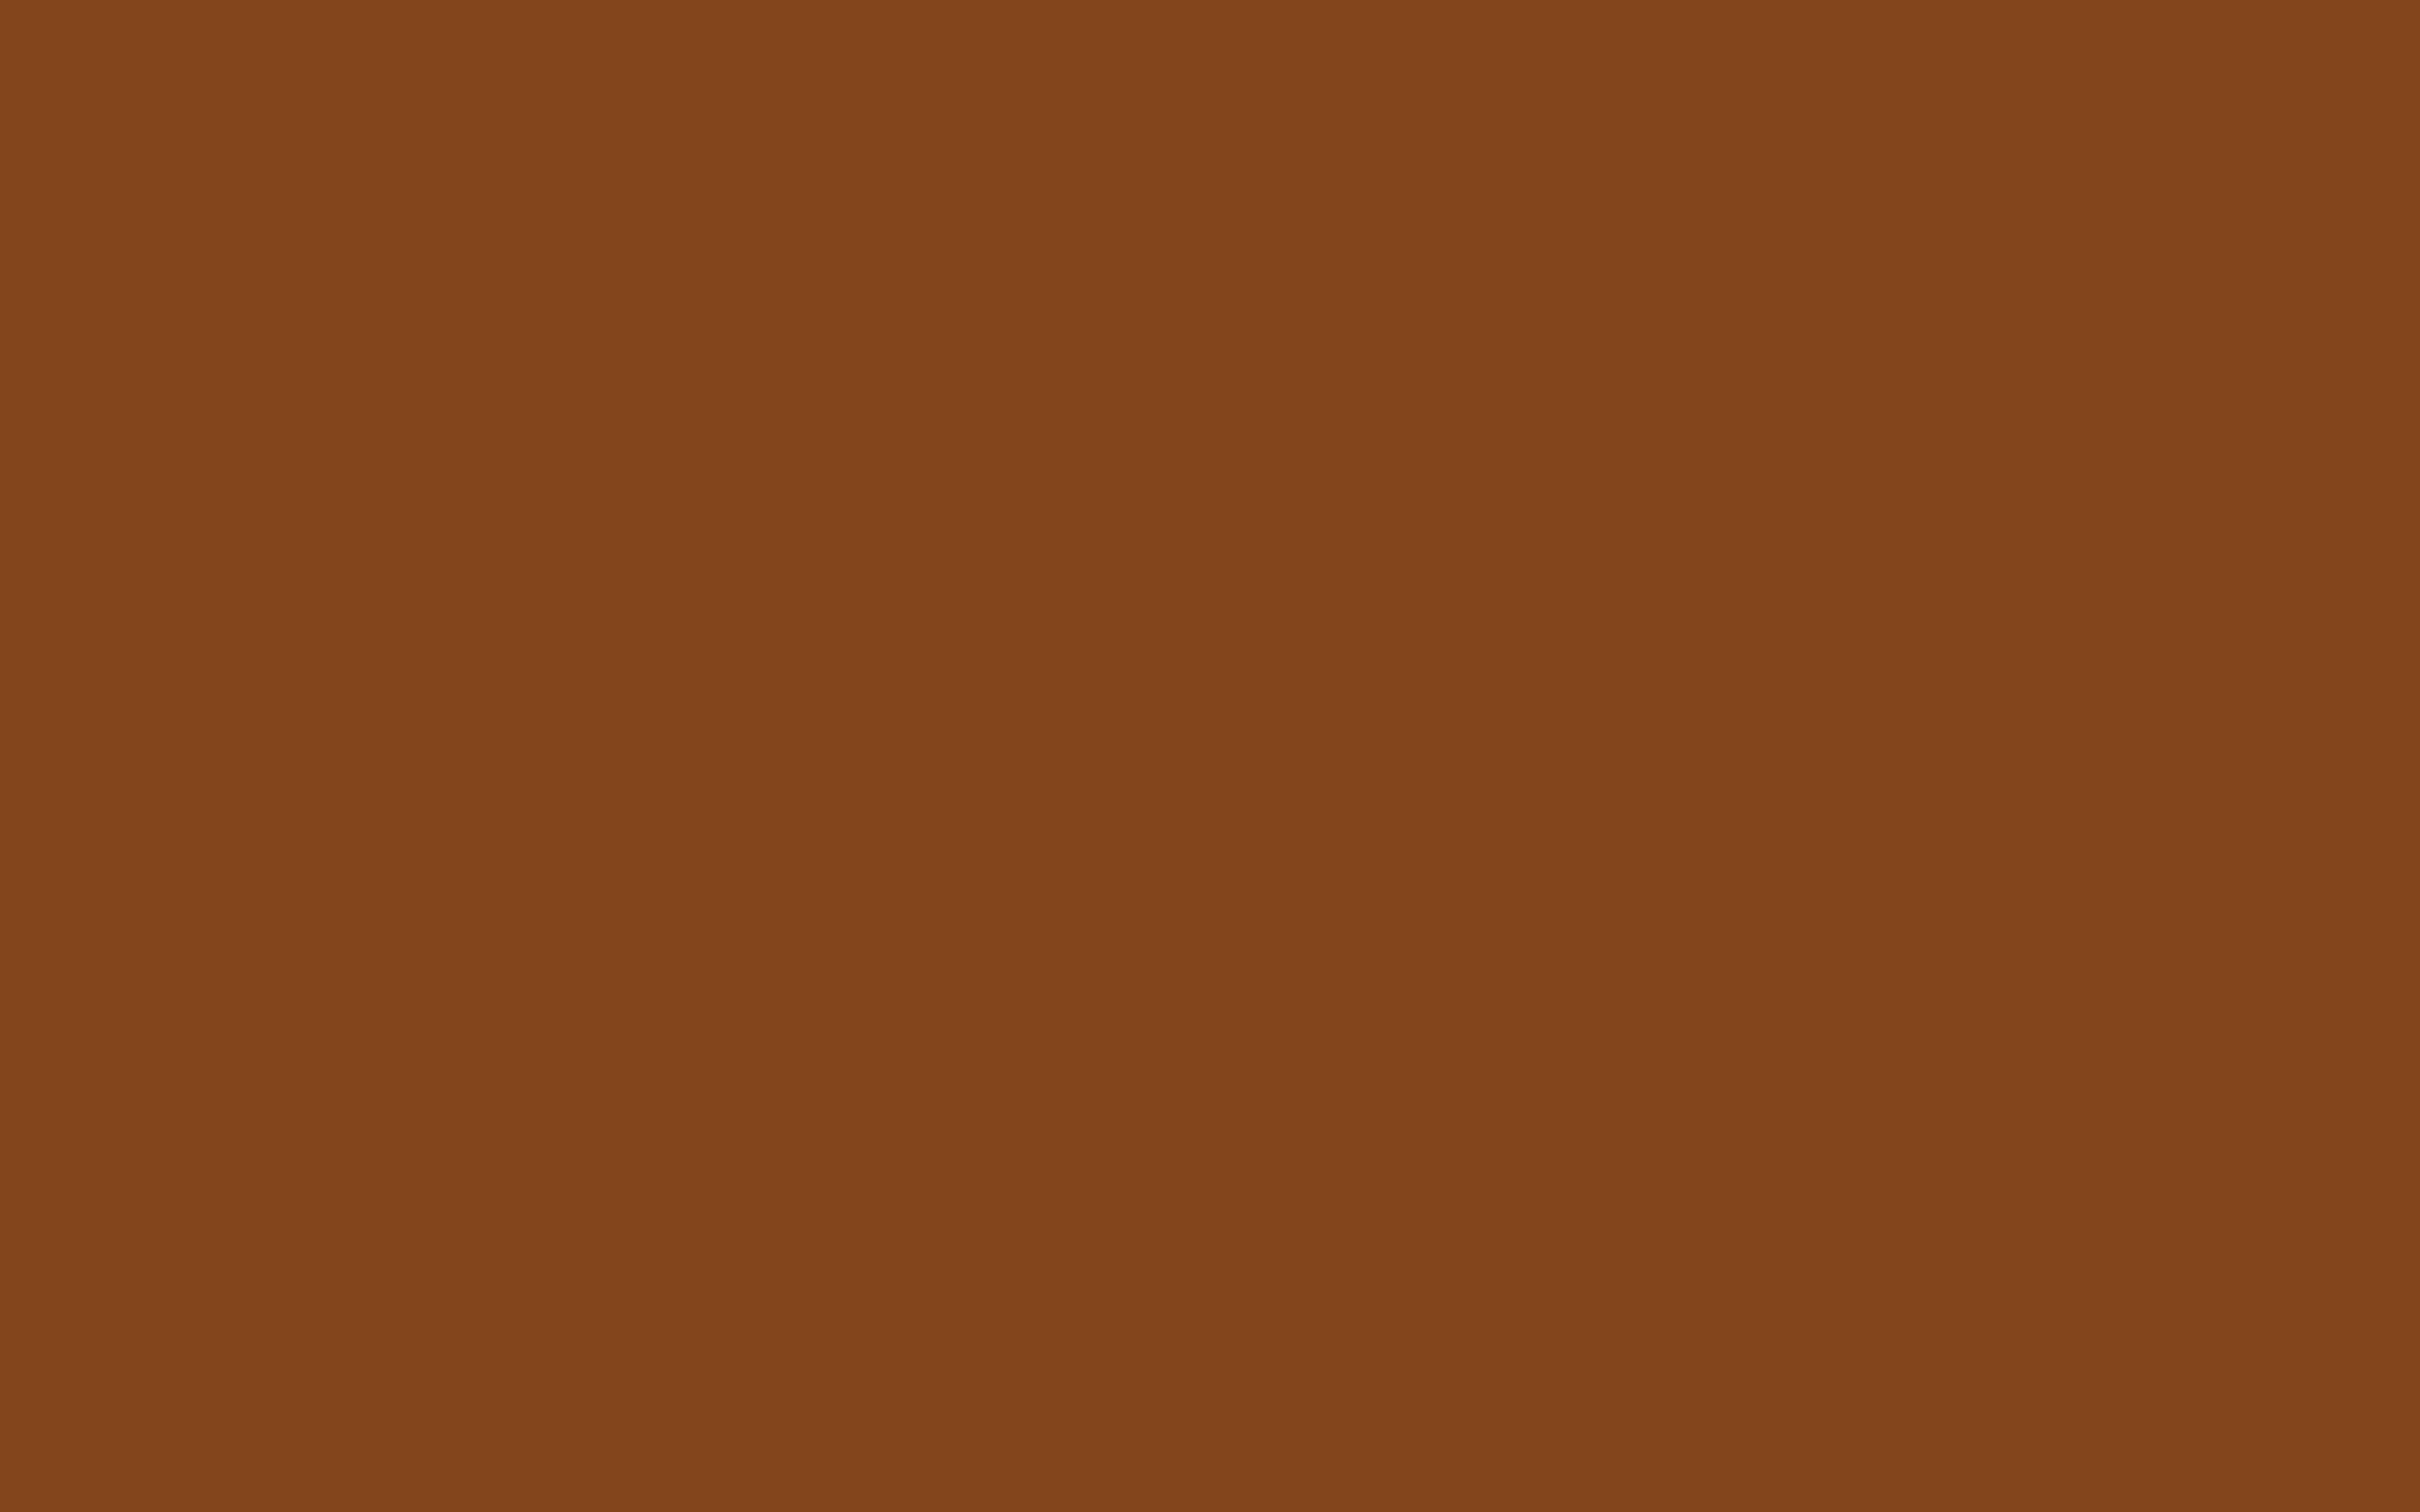 2880x1800 Russet Solid Color Background